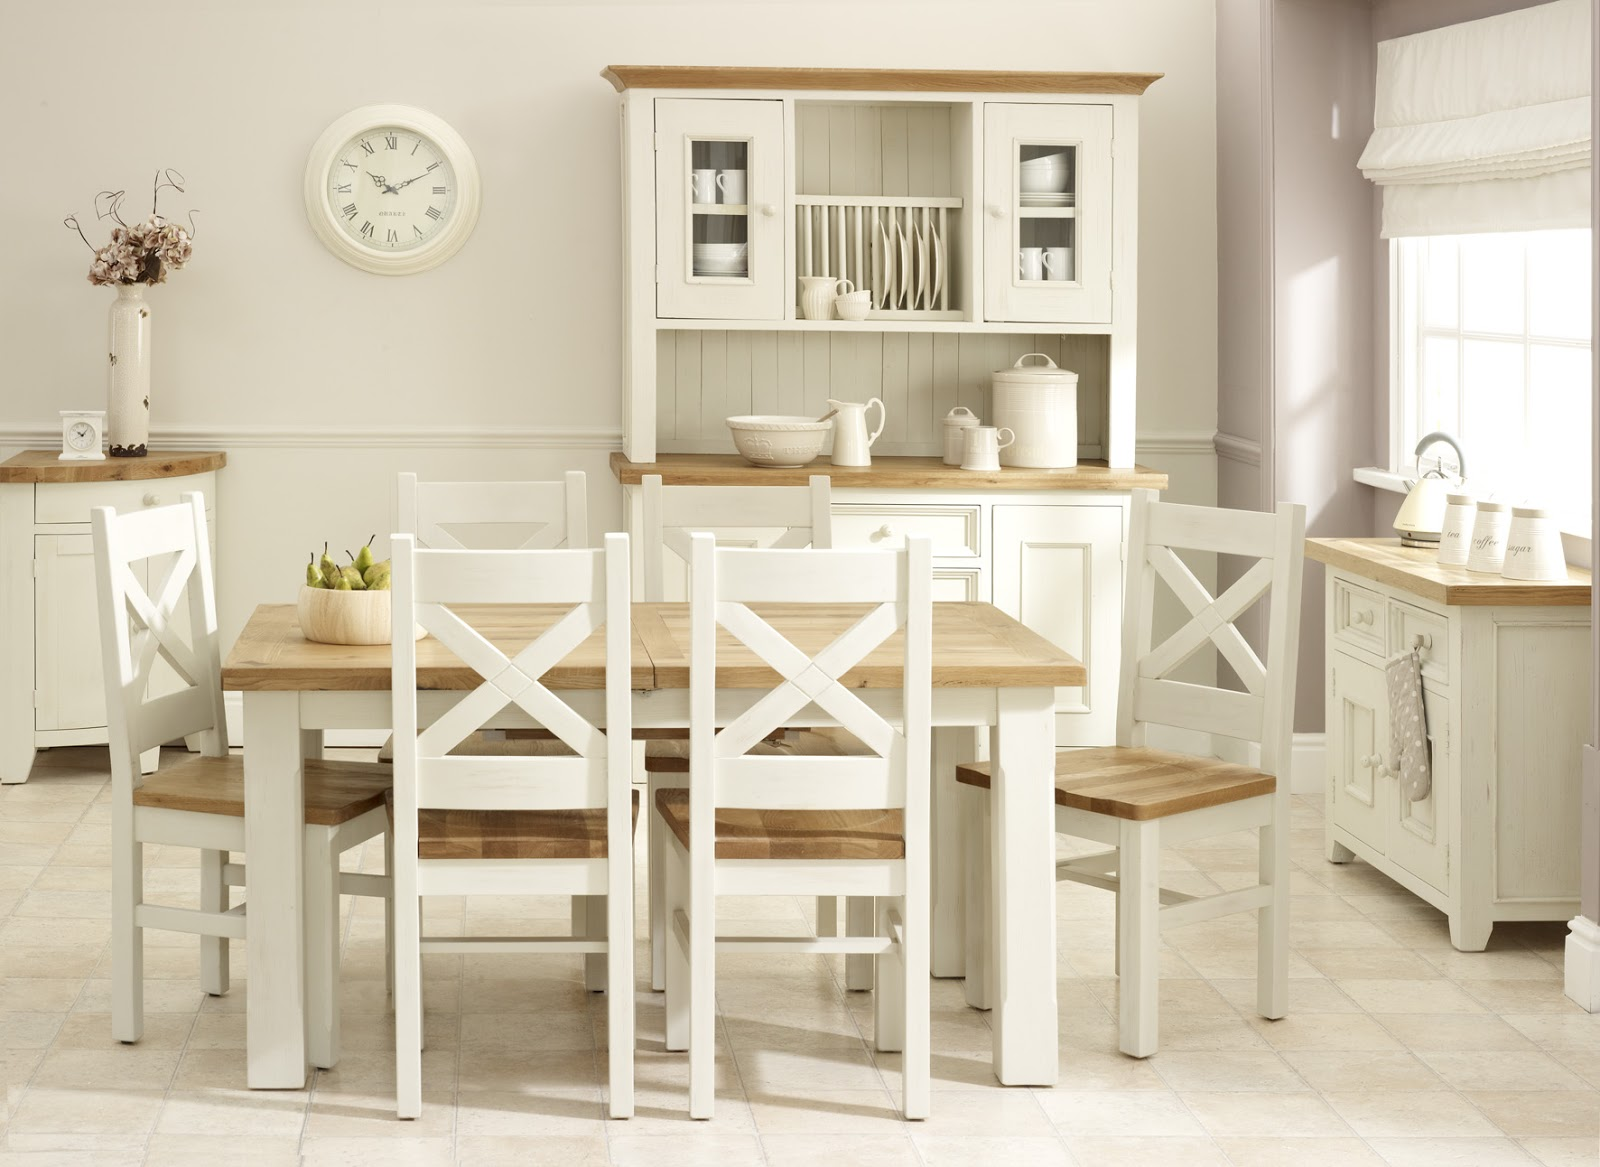 vanishing point dunelm mill at home catalogue release. Black Bedroom Furniture Sets. Home Design Ideas